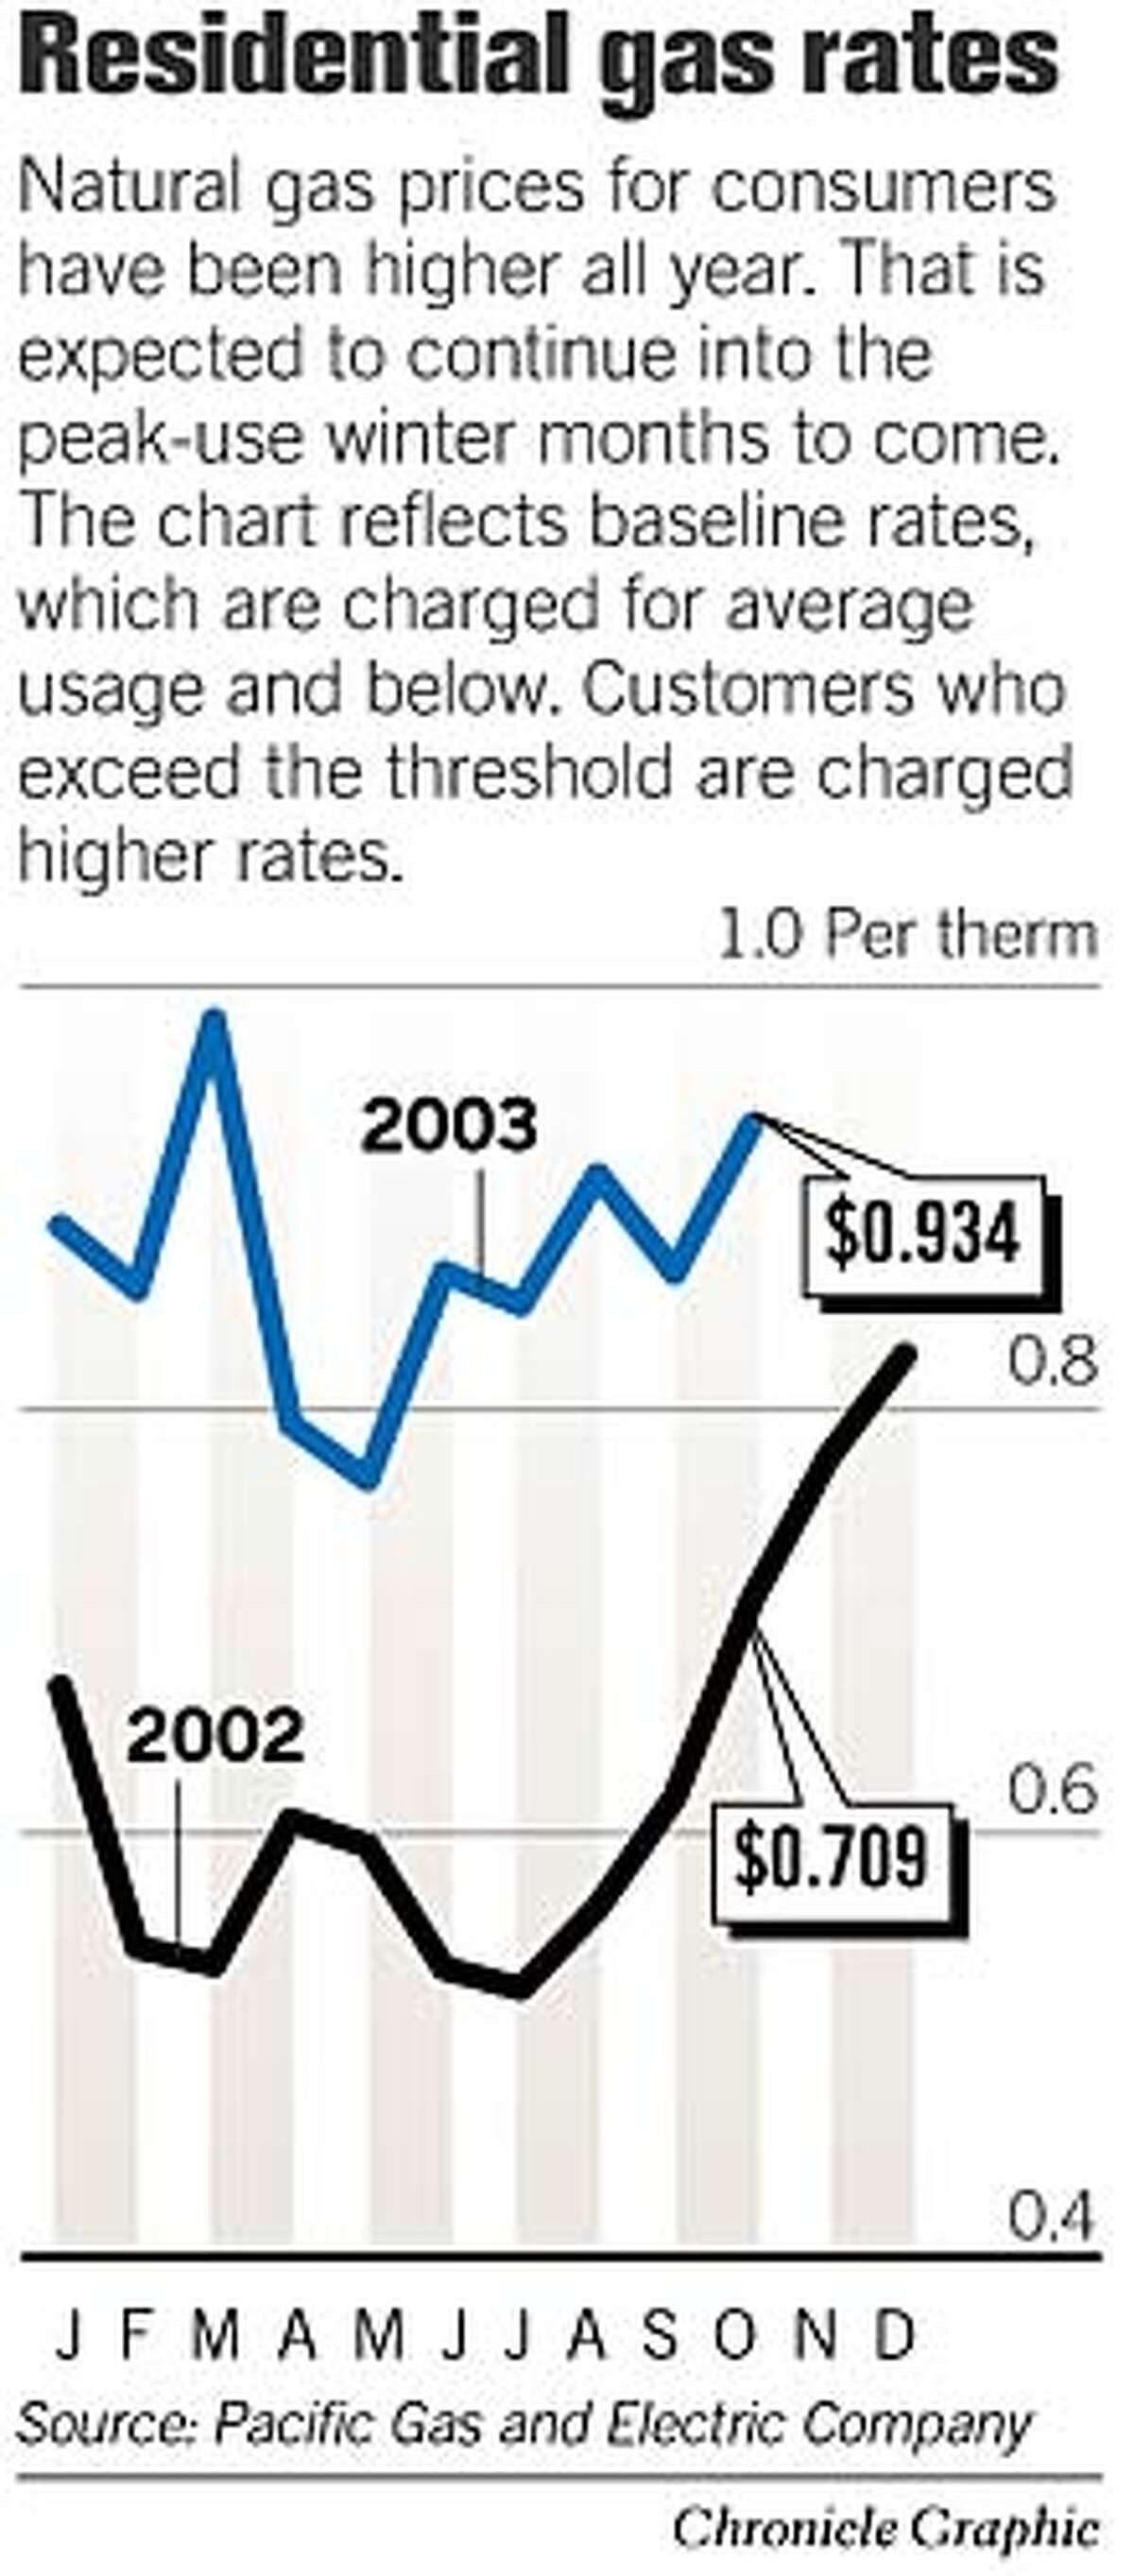 Residential Gas Rates. Chronicle Graphic